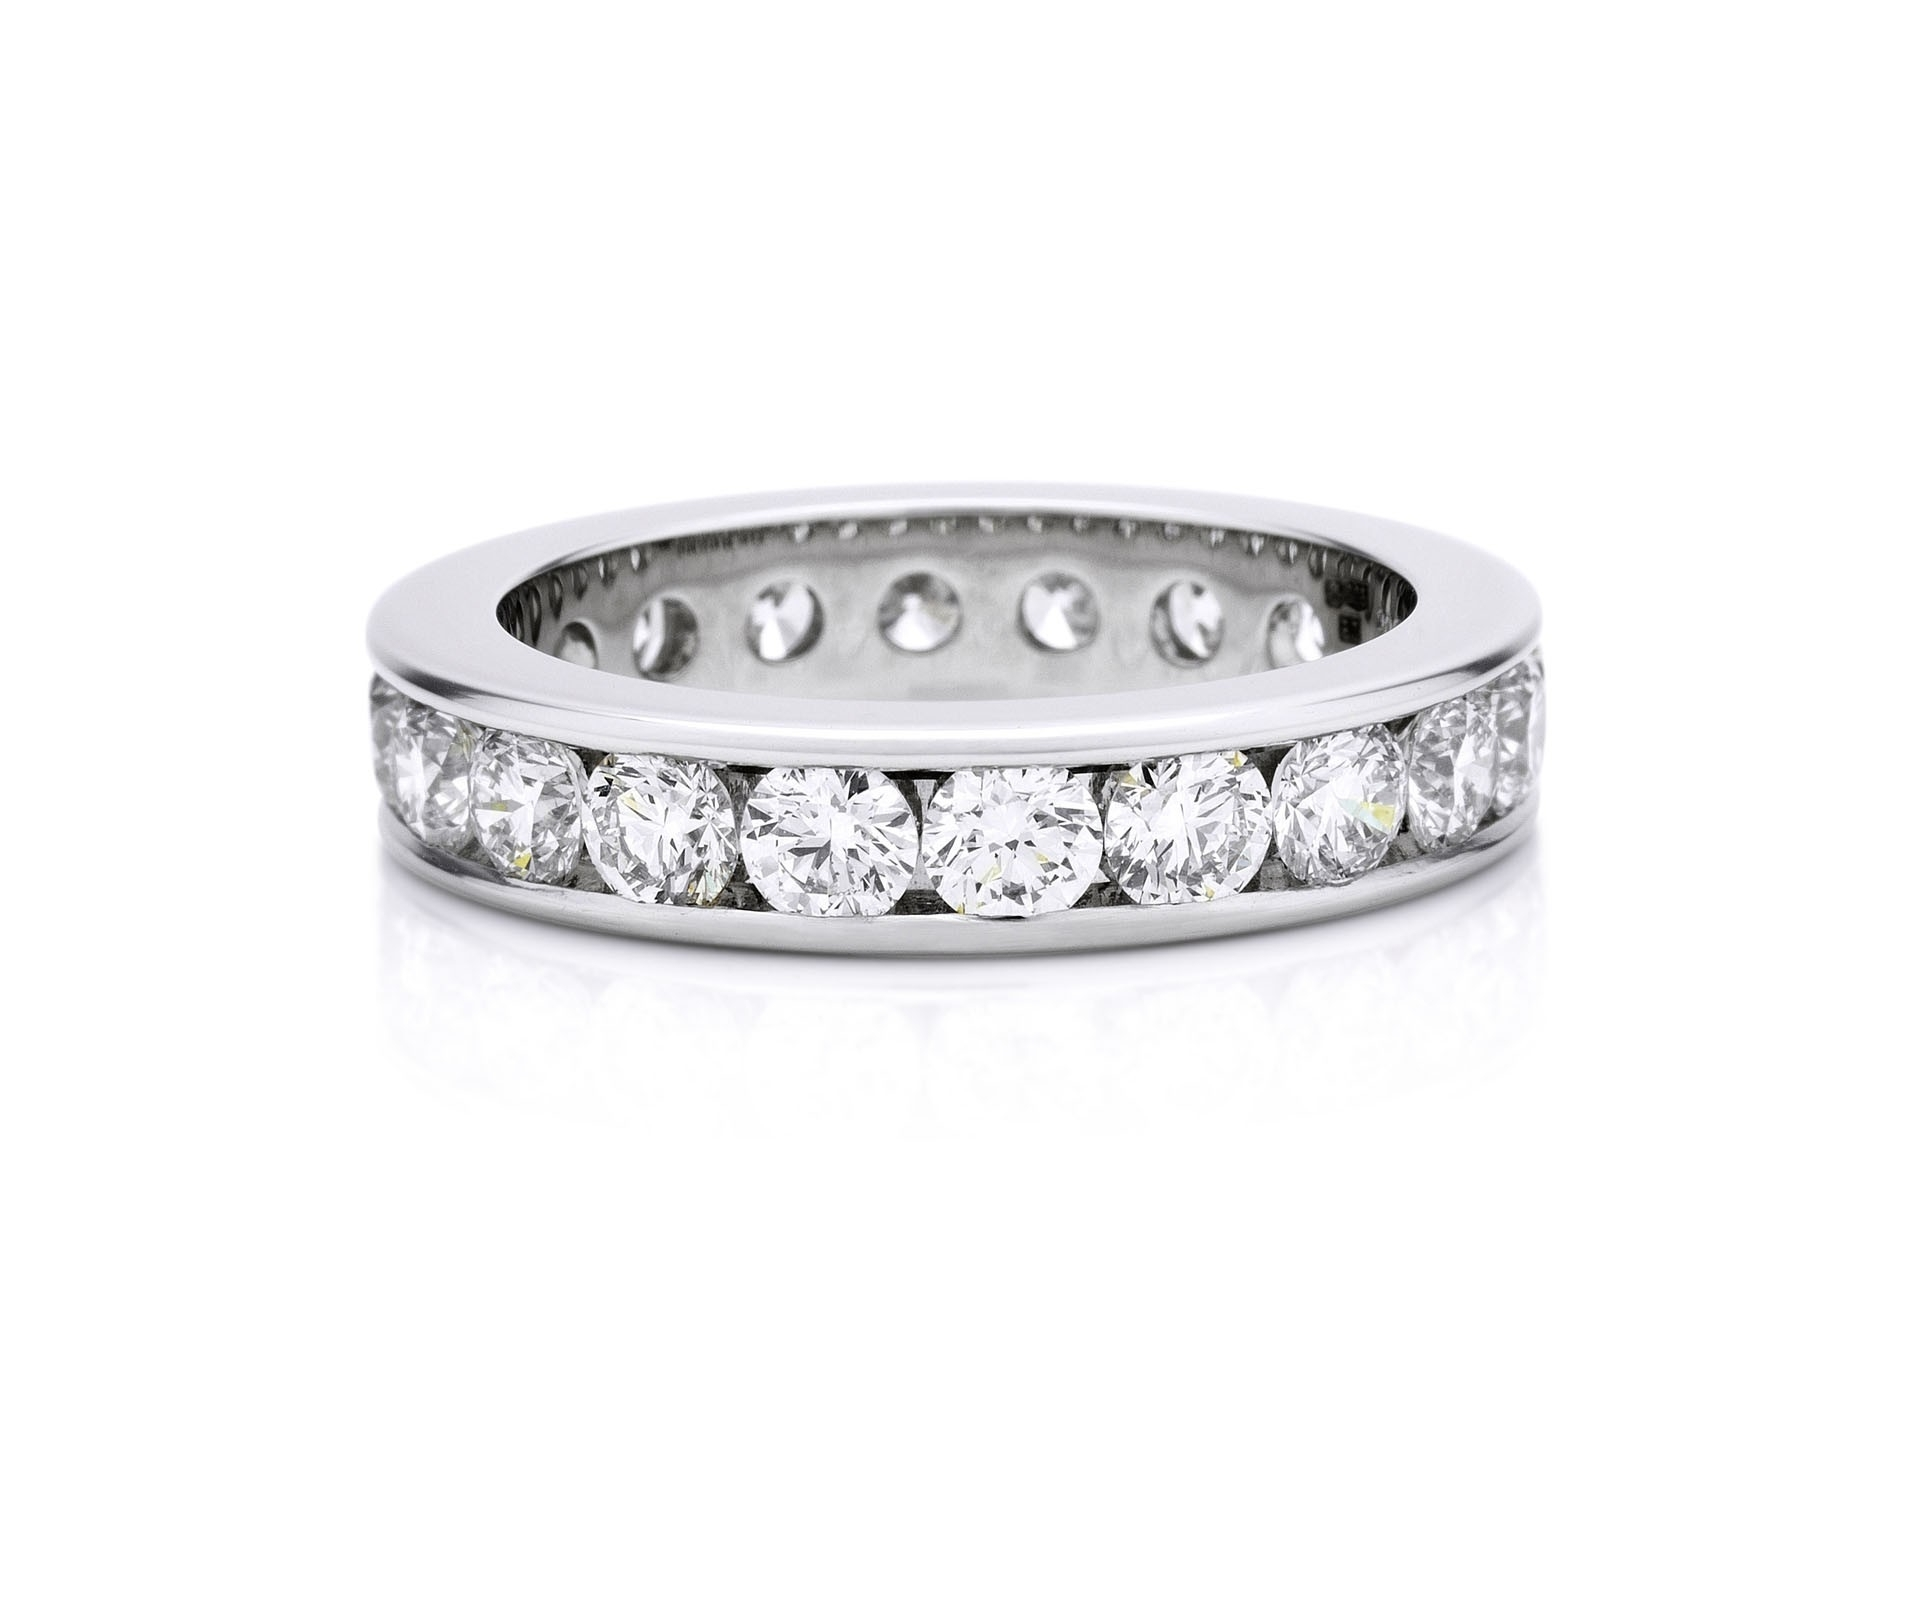 Channel Set Platinum 4Mm Eternity Ring | De Beers Regarding 2017 Diamond Channel Set Anniversary Bands (Gallery 12 of 15)